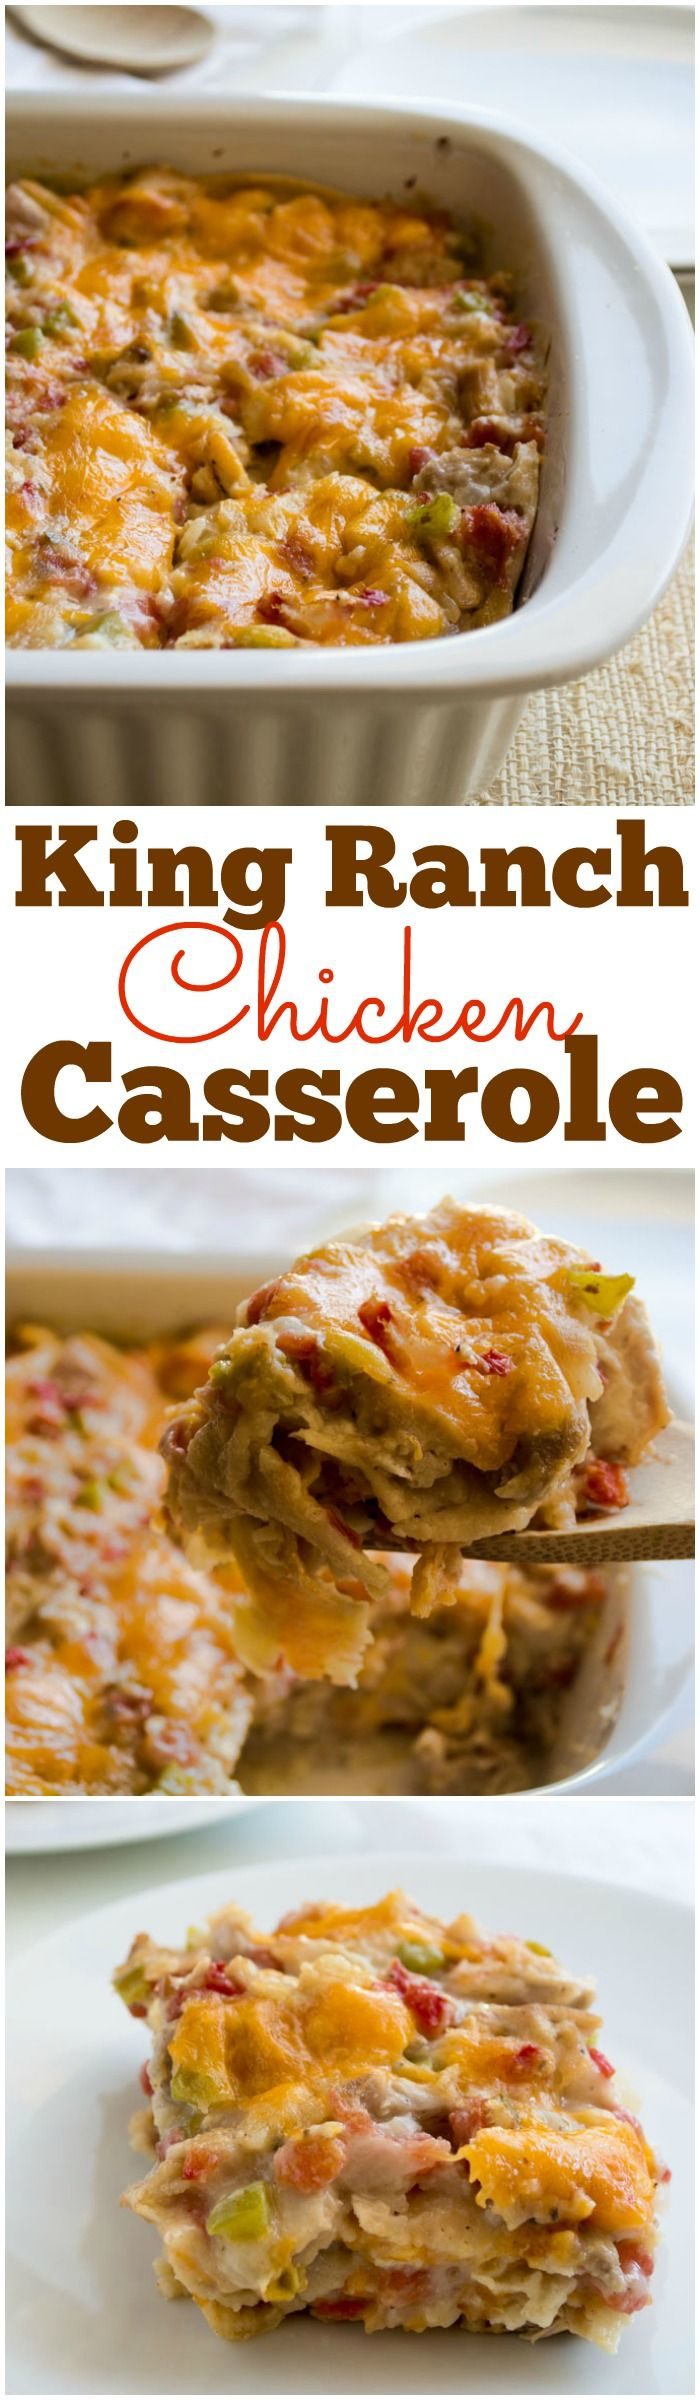 This lighter version of a classic is sure to please everyone who gathers around your family table! This creamy, cheesy, King Ranch Chicken Casserole is bursting with chunks of chicken, tomatoes, green chiles, and bell peppers.  #ad #smartmeals